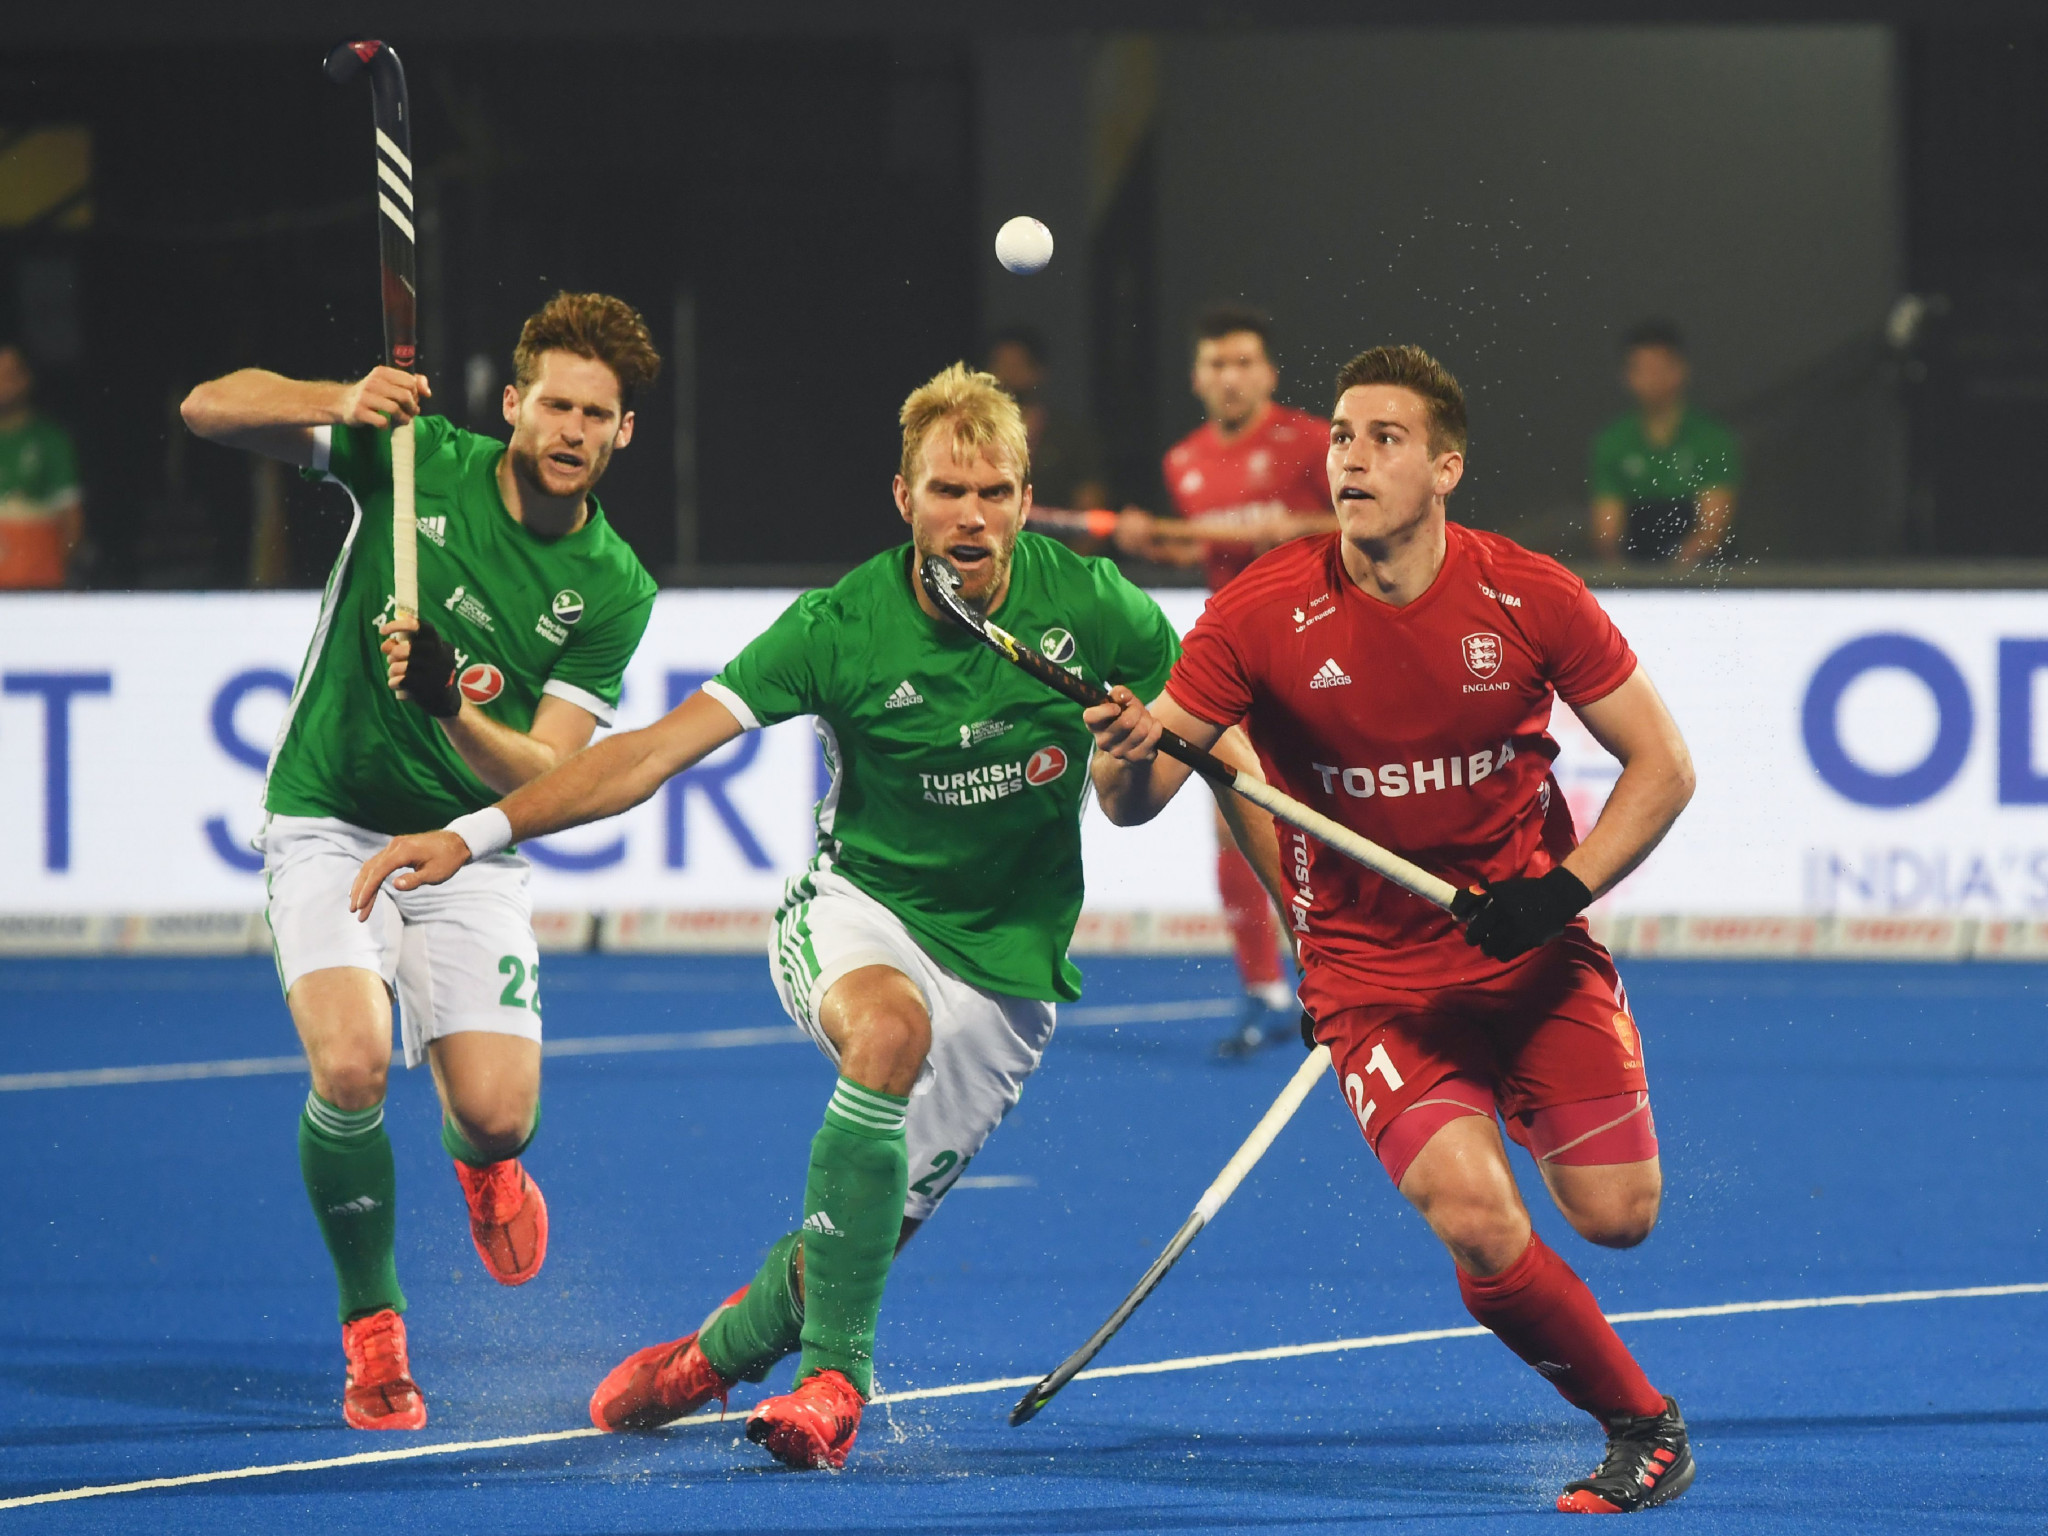 England progress at expense of Ireland at FIH Men's Hockey World Cup